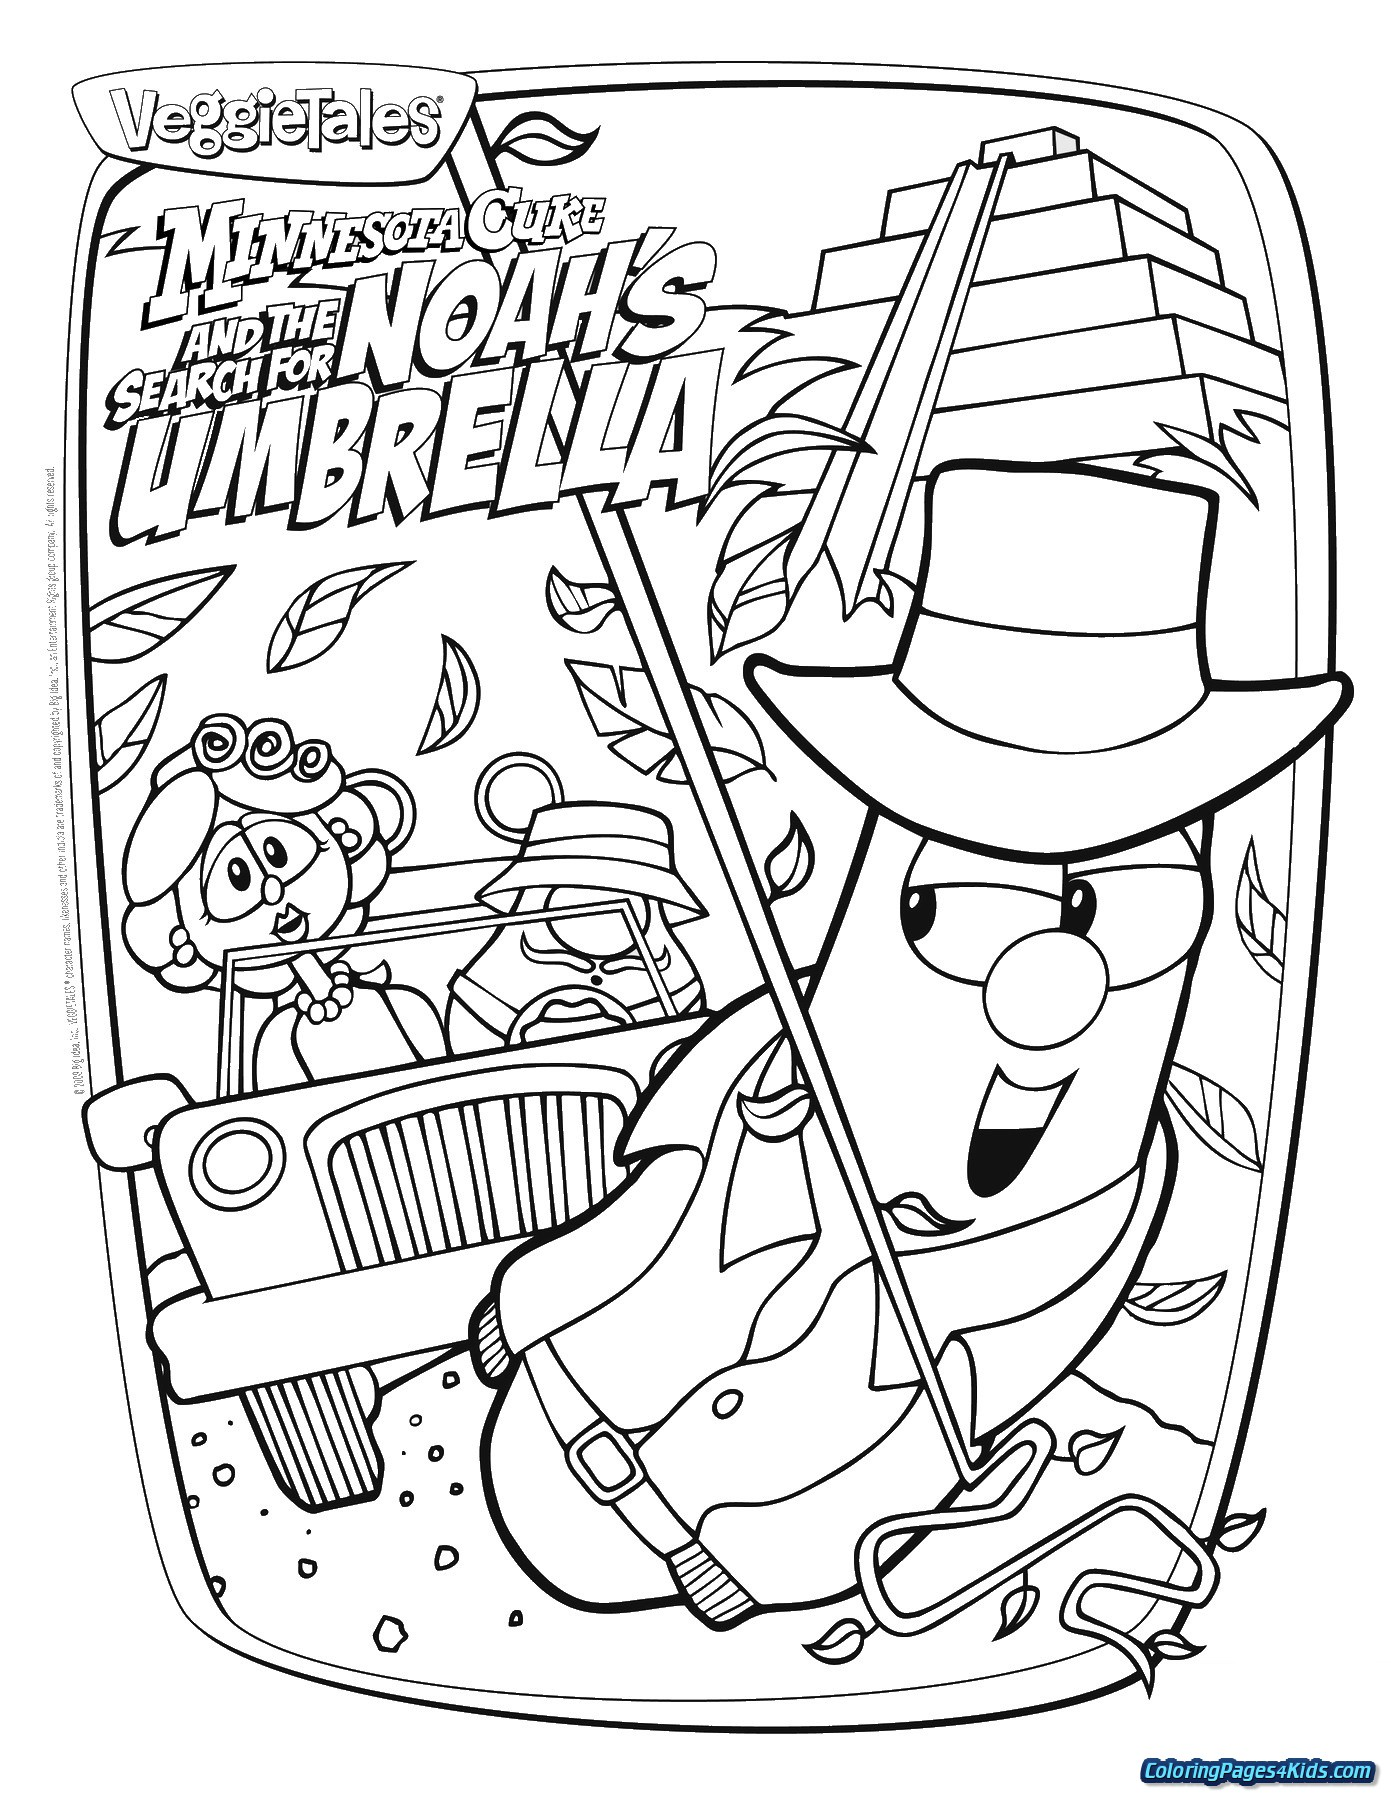 Veggie Tales Christmas Coloring Pages With Easter For Kids